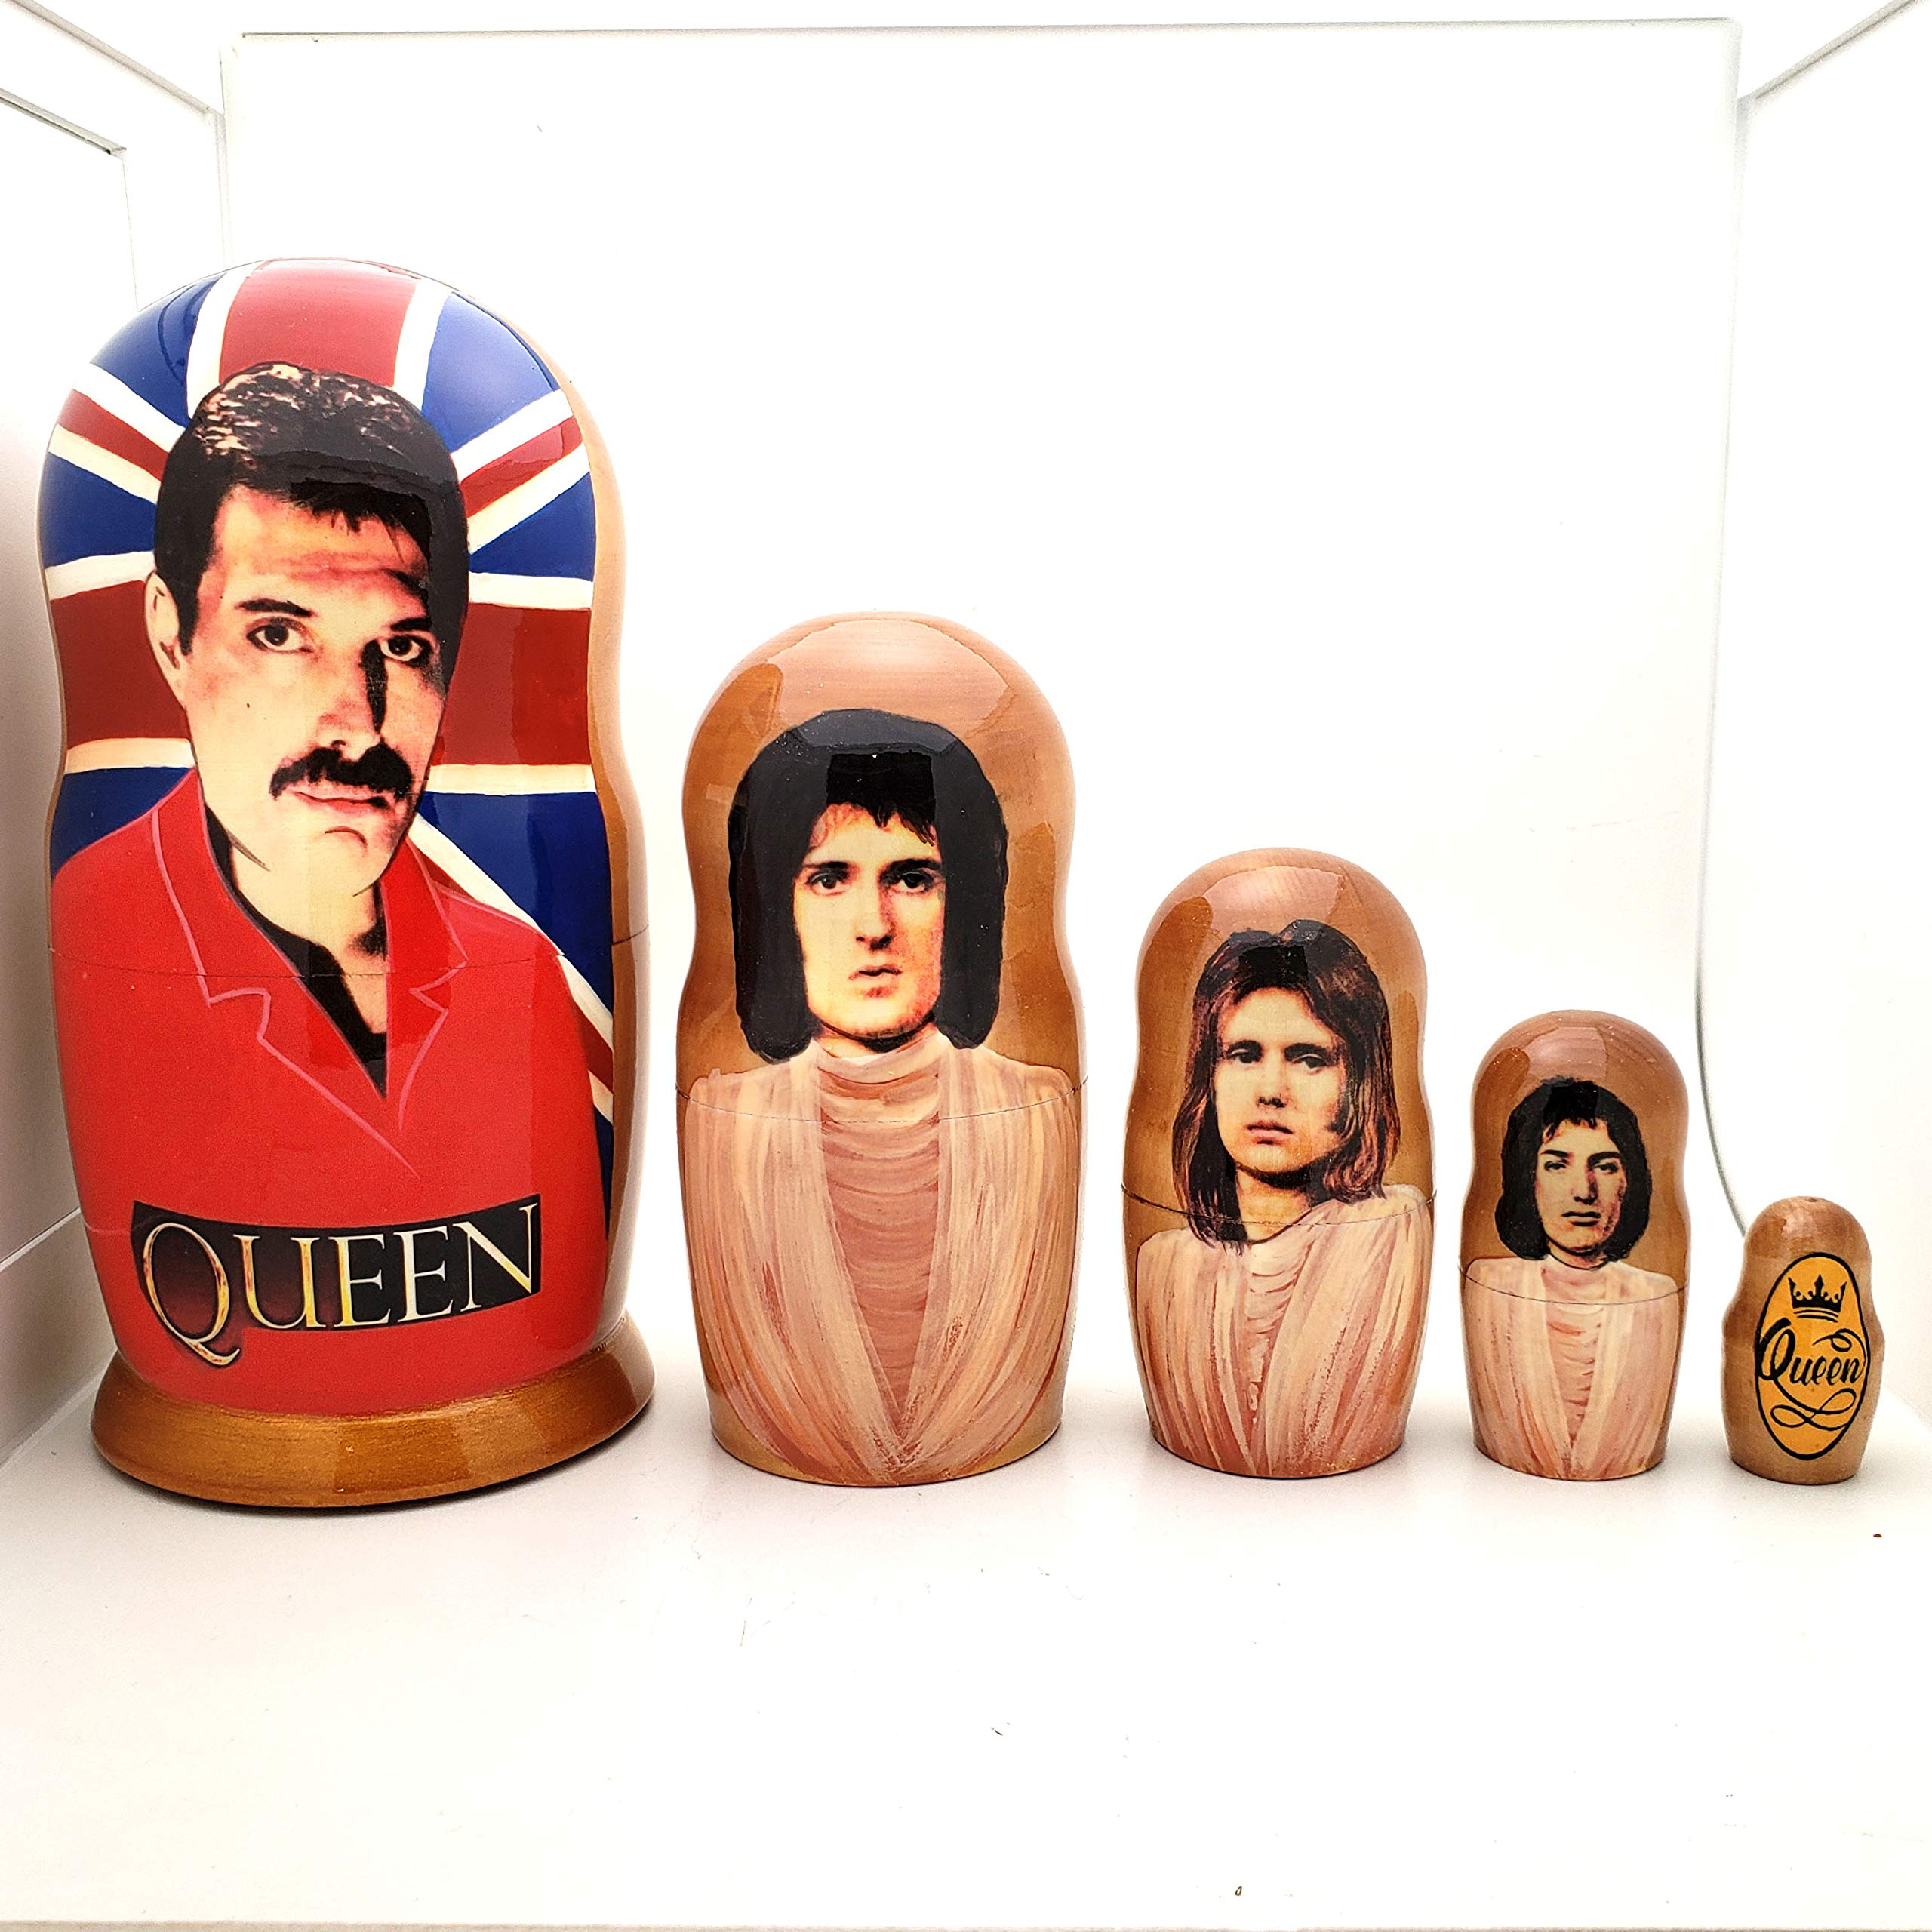 Queen Band Russian Nesting Dolls 5 Piece Doll Set 7'' Tall / Freddie Mercury, Brian May, Roger Taylor, John Deacon by BuyRussianGifts (Image #2)